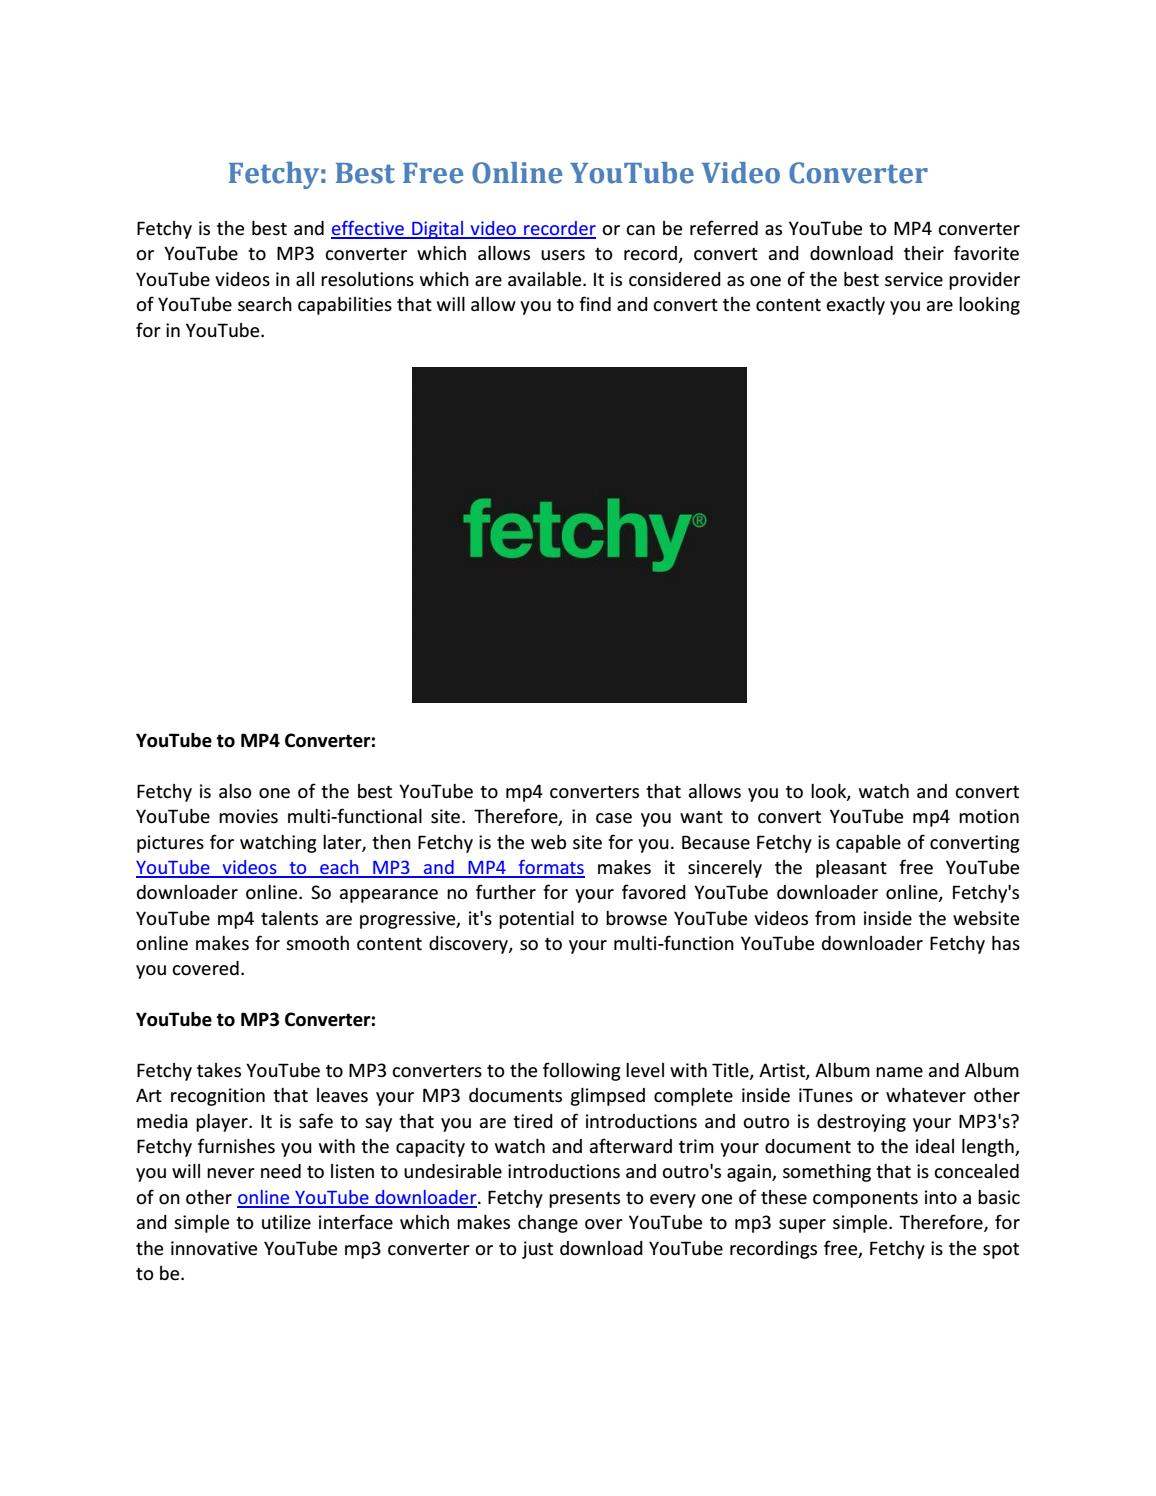 Youtube Best Makeup Tutorial: Fetchy: Best Free Online YouTube Video Converter By Fetchy